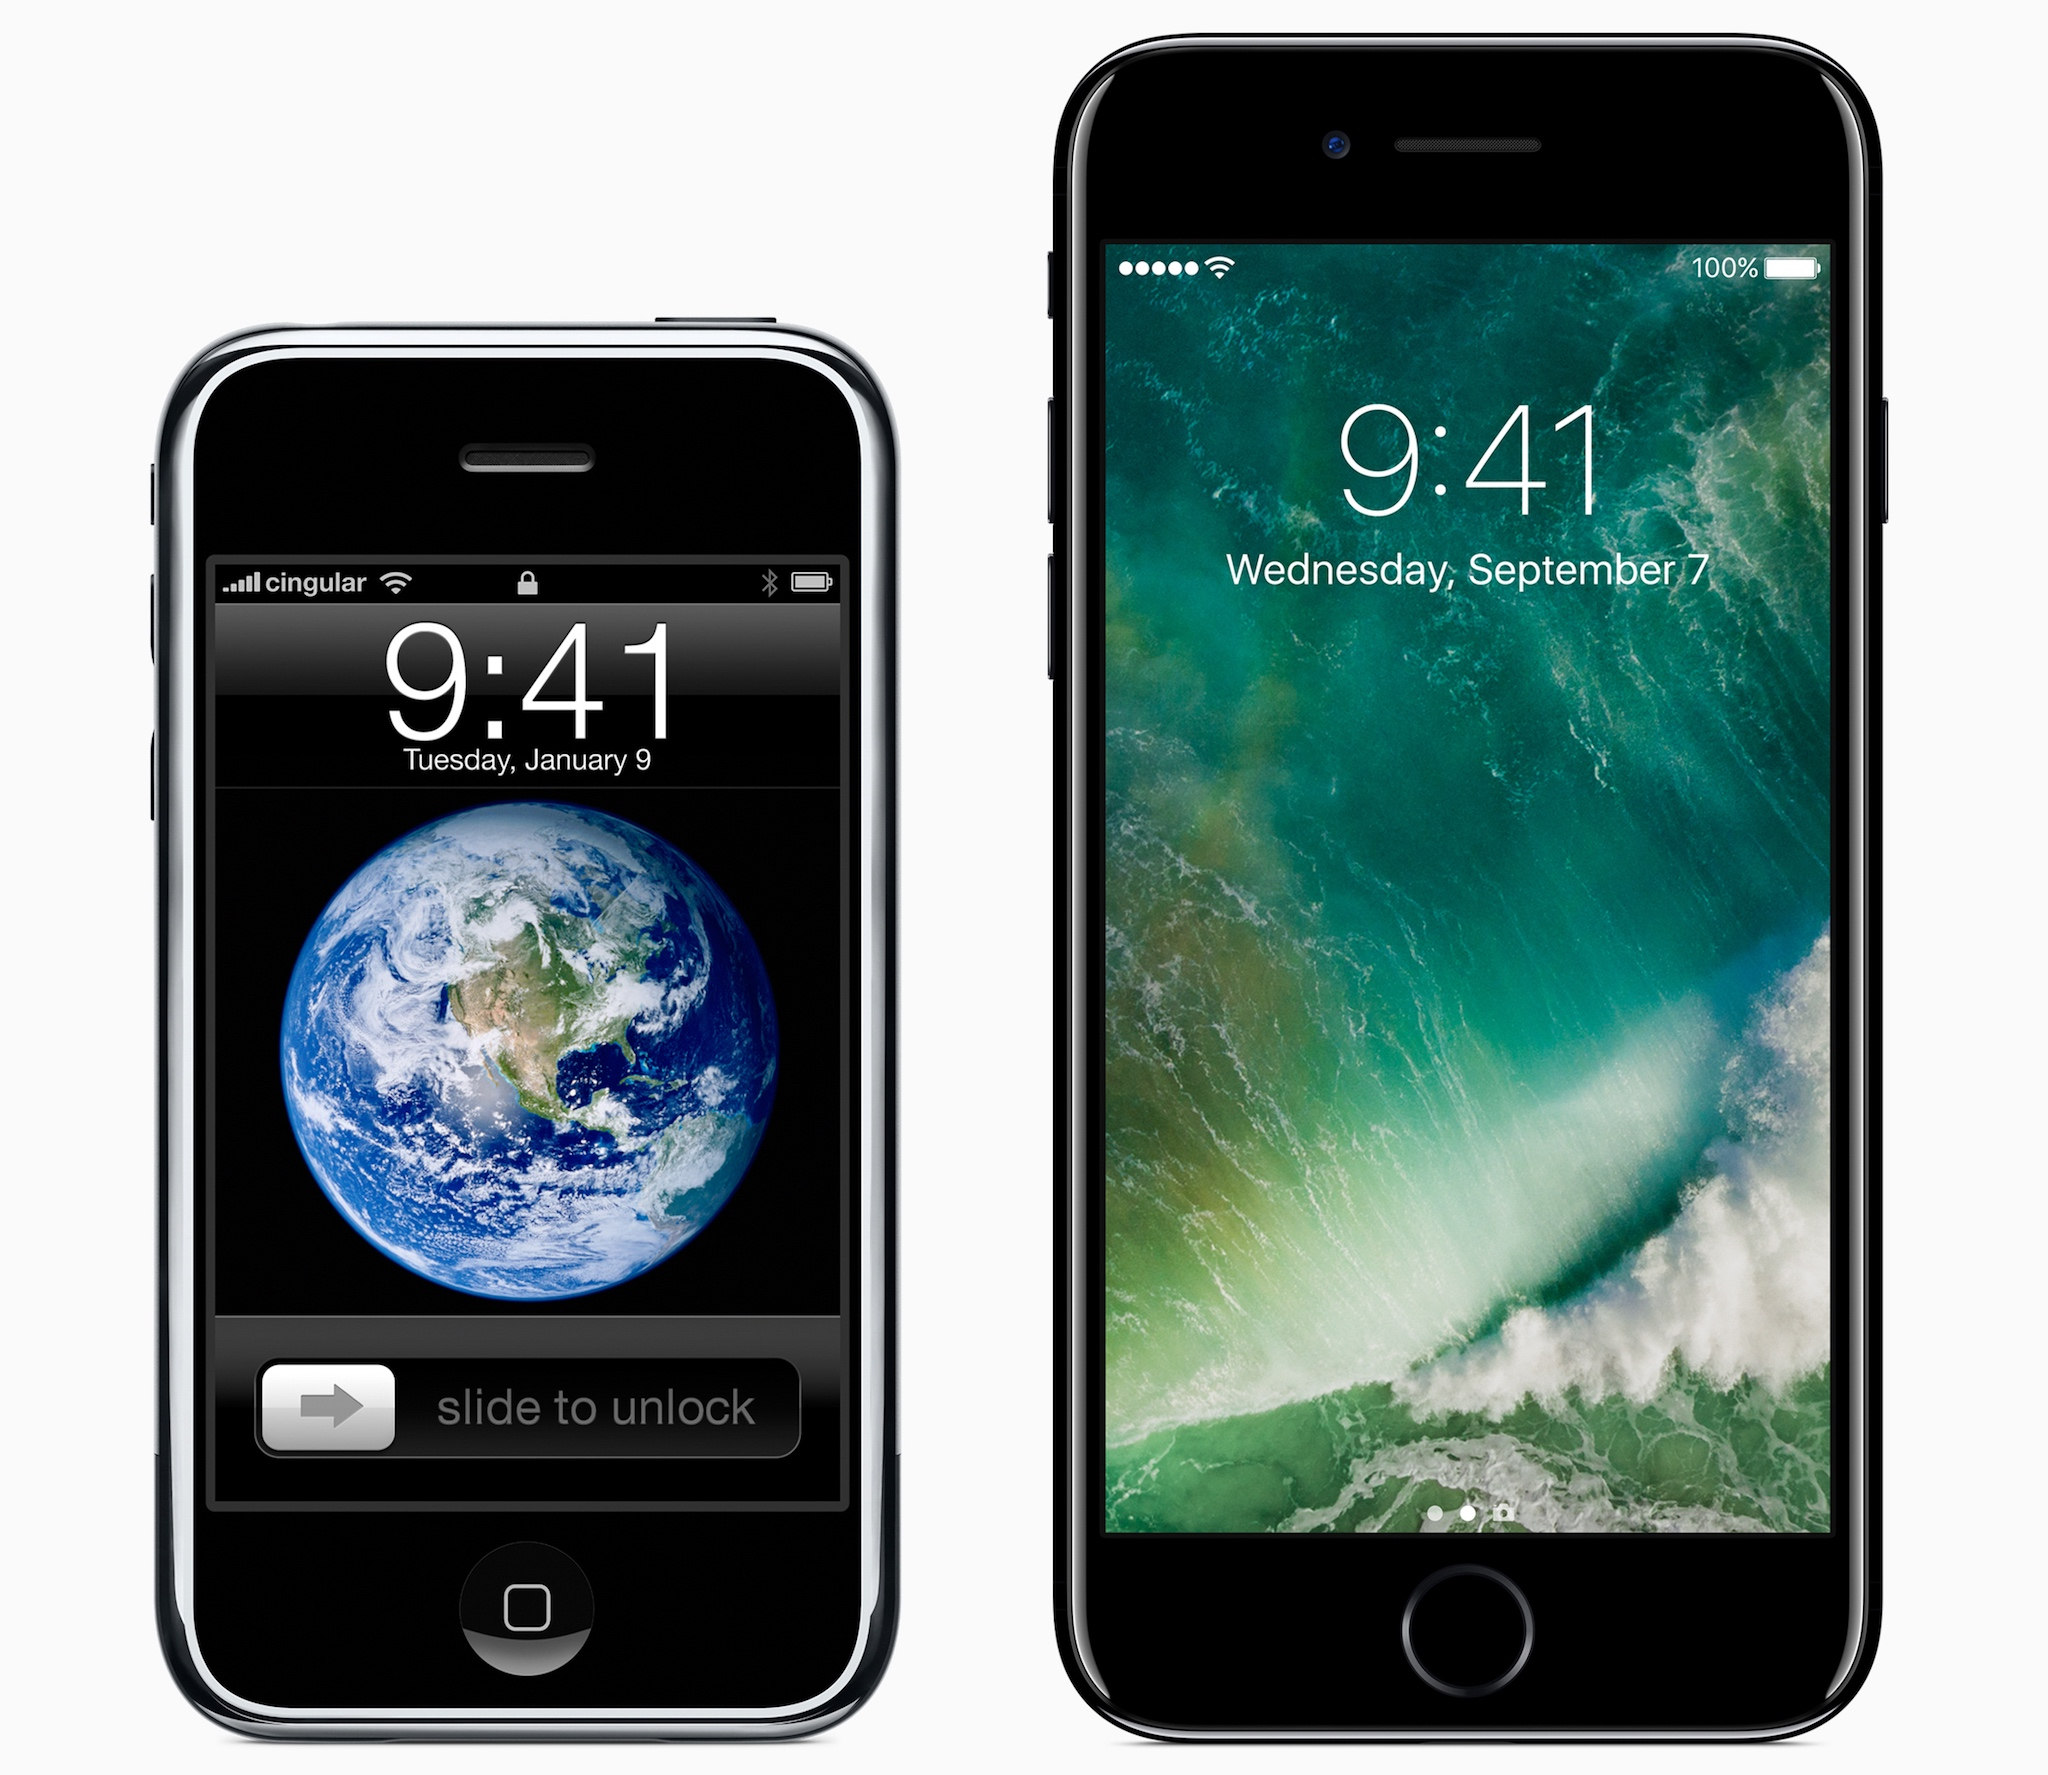 order of iphones from oldest to newest iphones in order from oldest to newest 22726